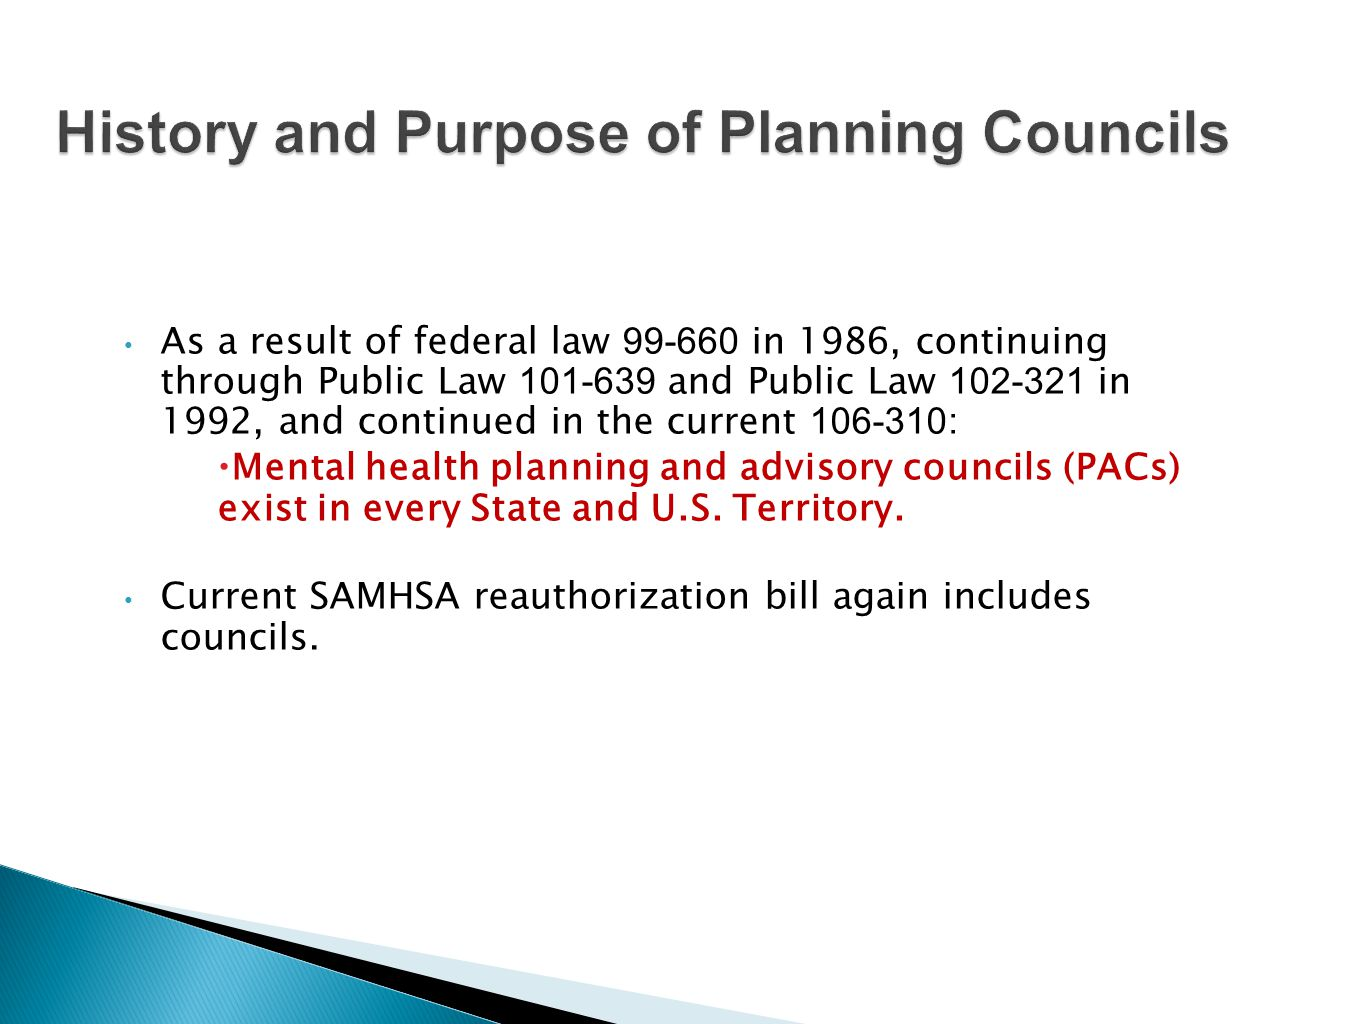 As a result of federal law in 1986, continuing through Public Law and Public Law in 1992, and continued in the current :  Mental health planning and advisory councils (PACs) exist in every State and U.S.